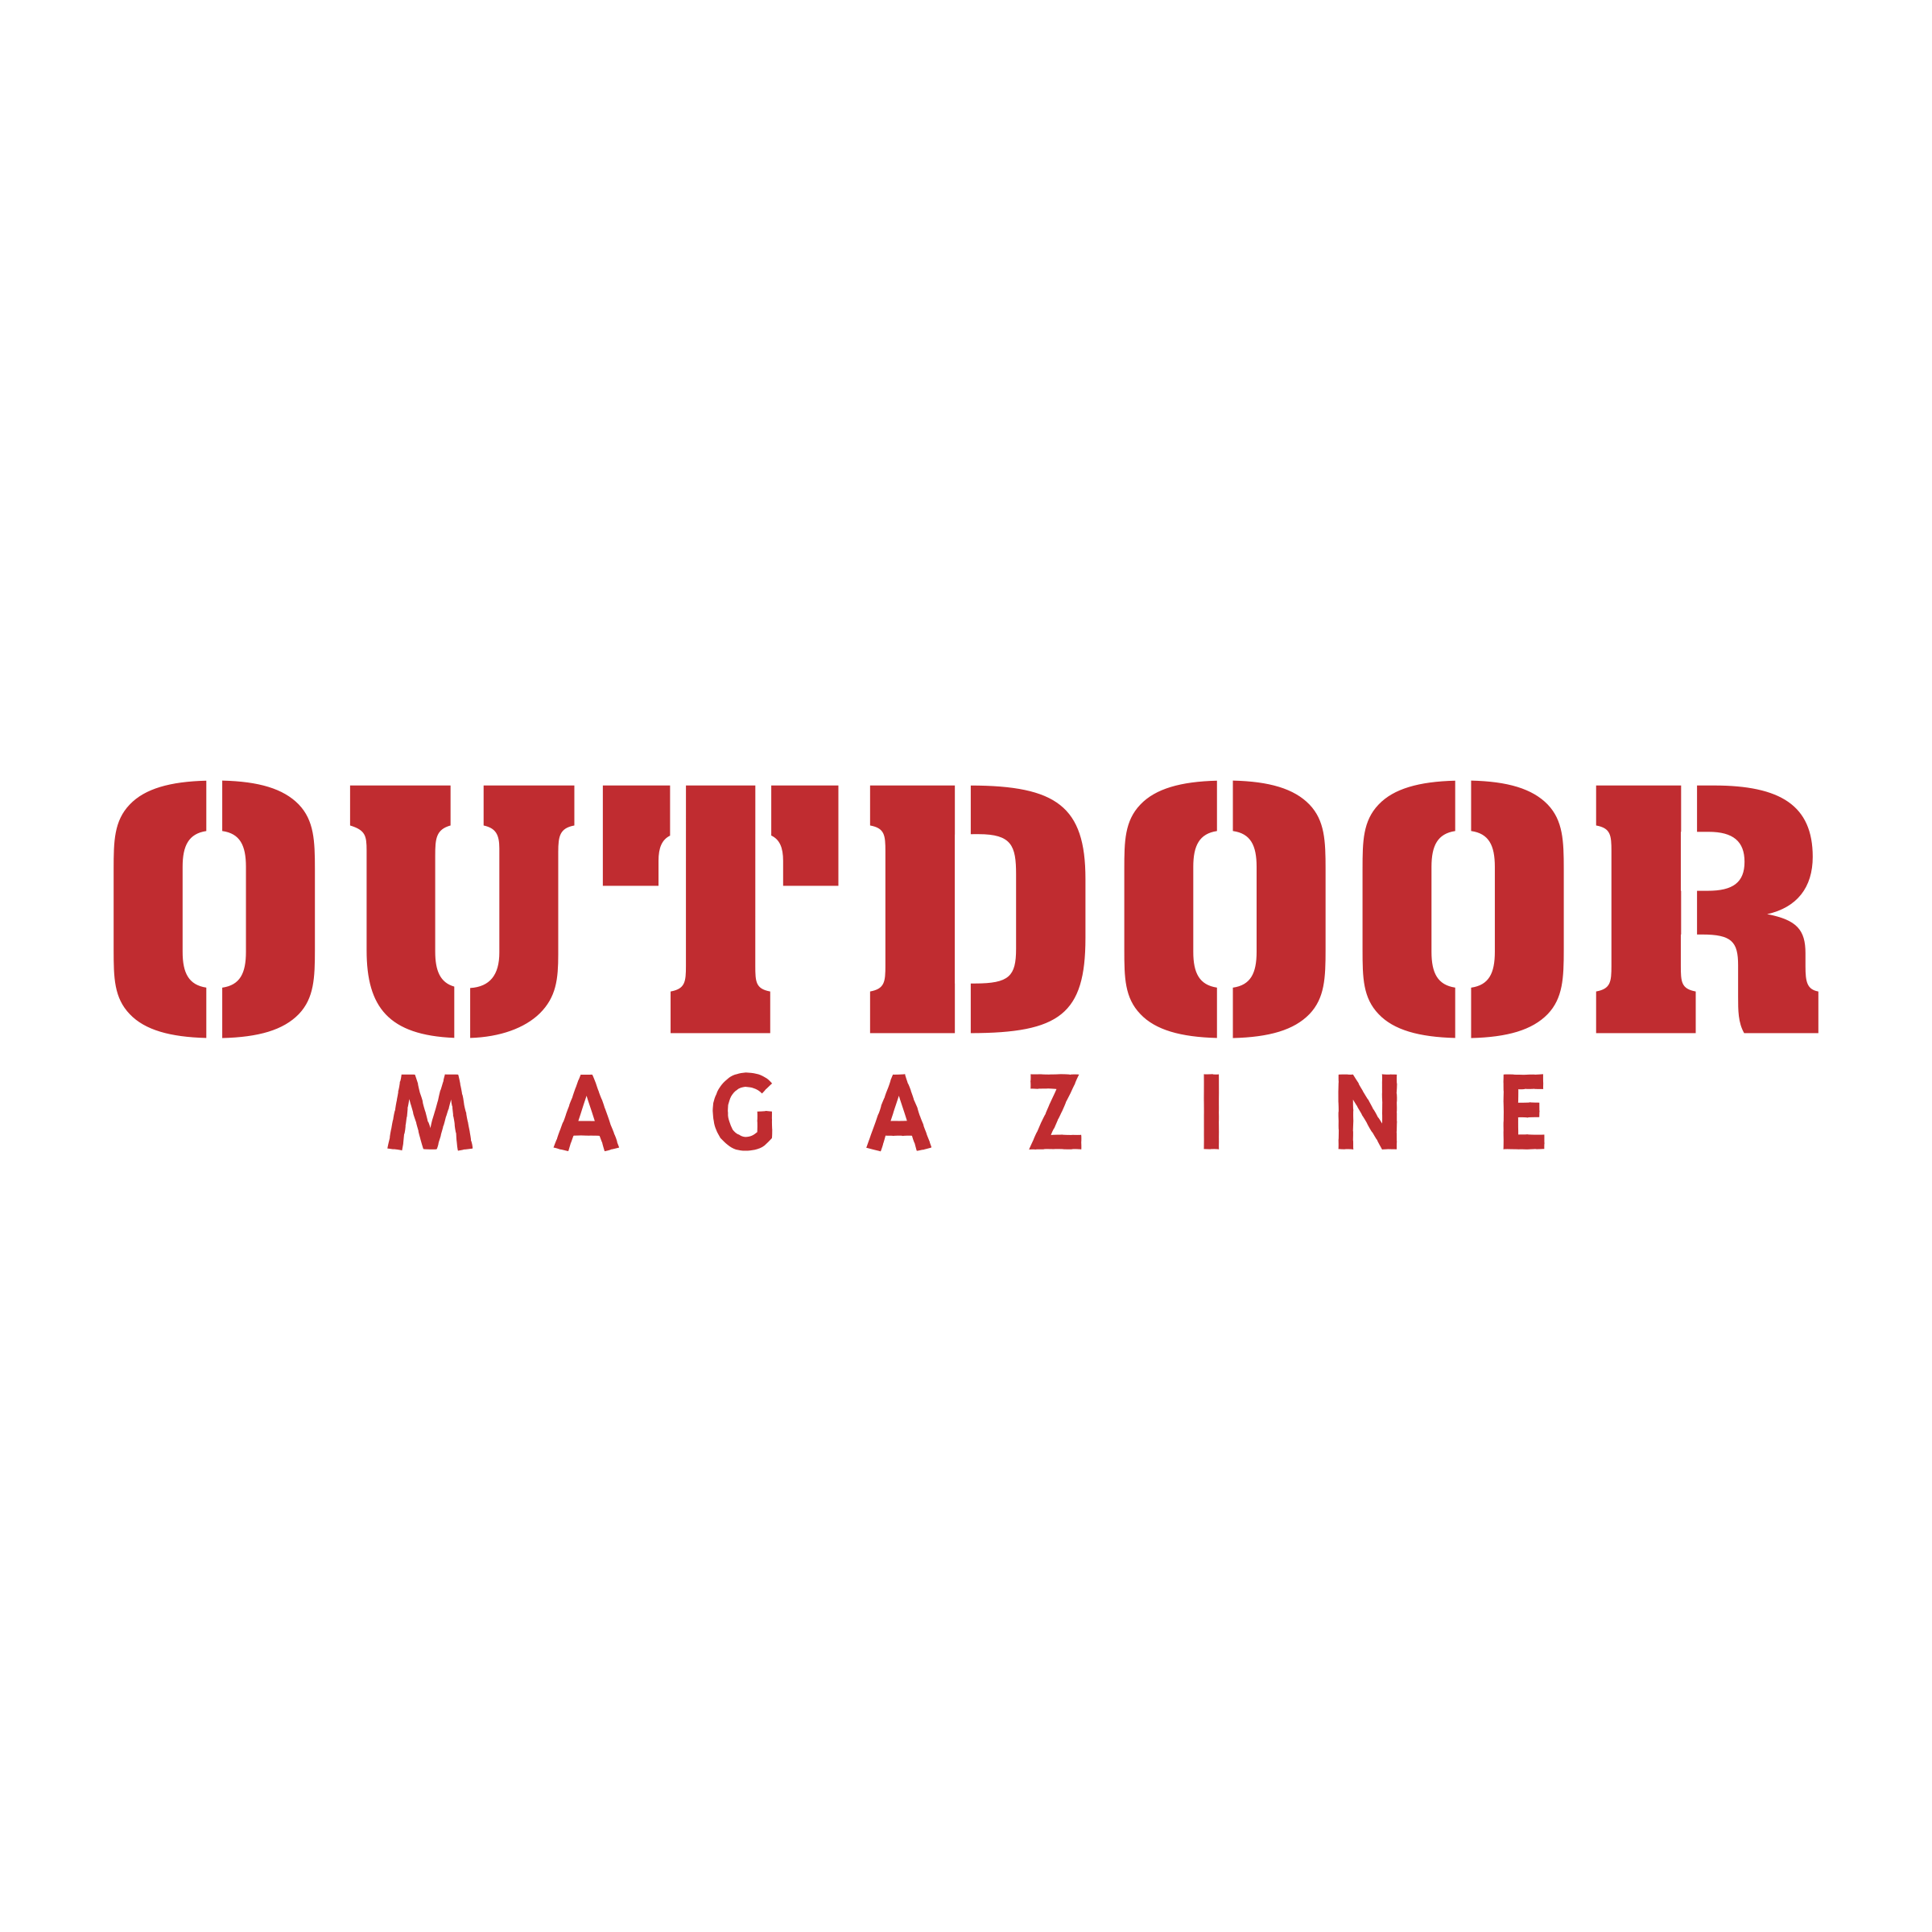 Vector magazines svg. Outdoor magazine logo png